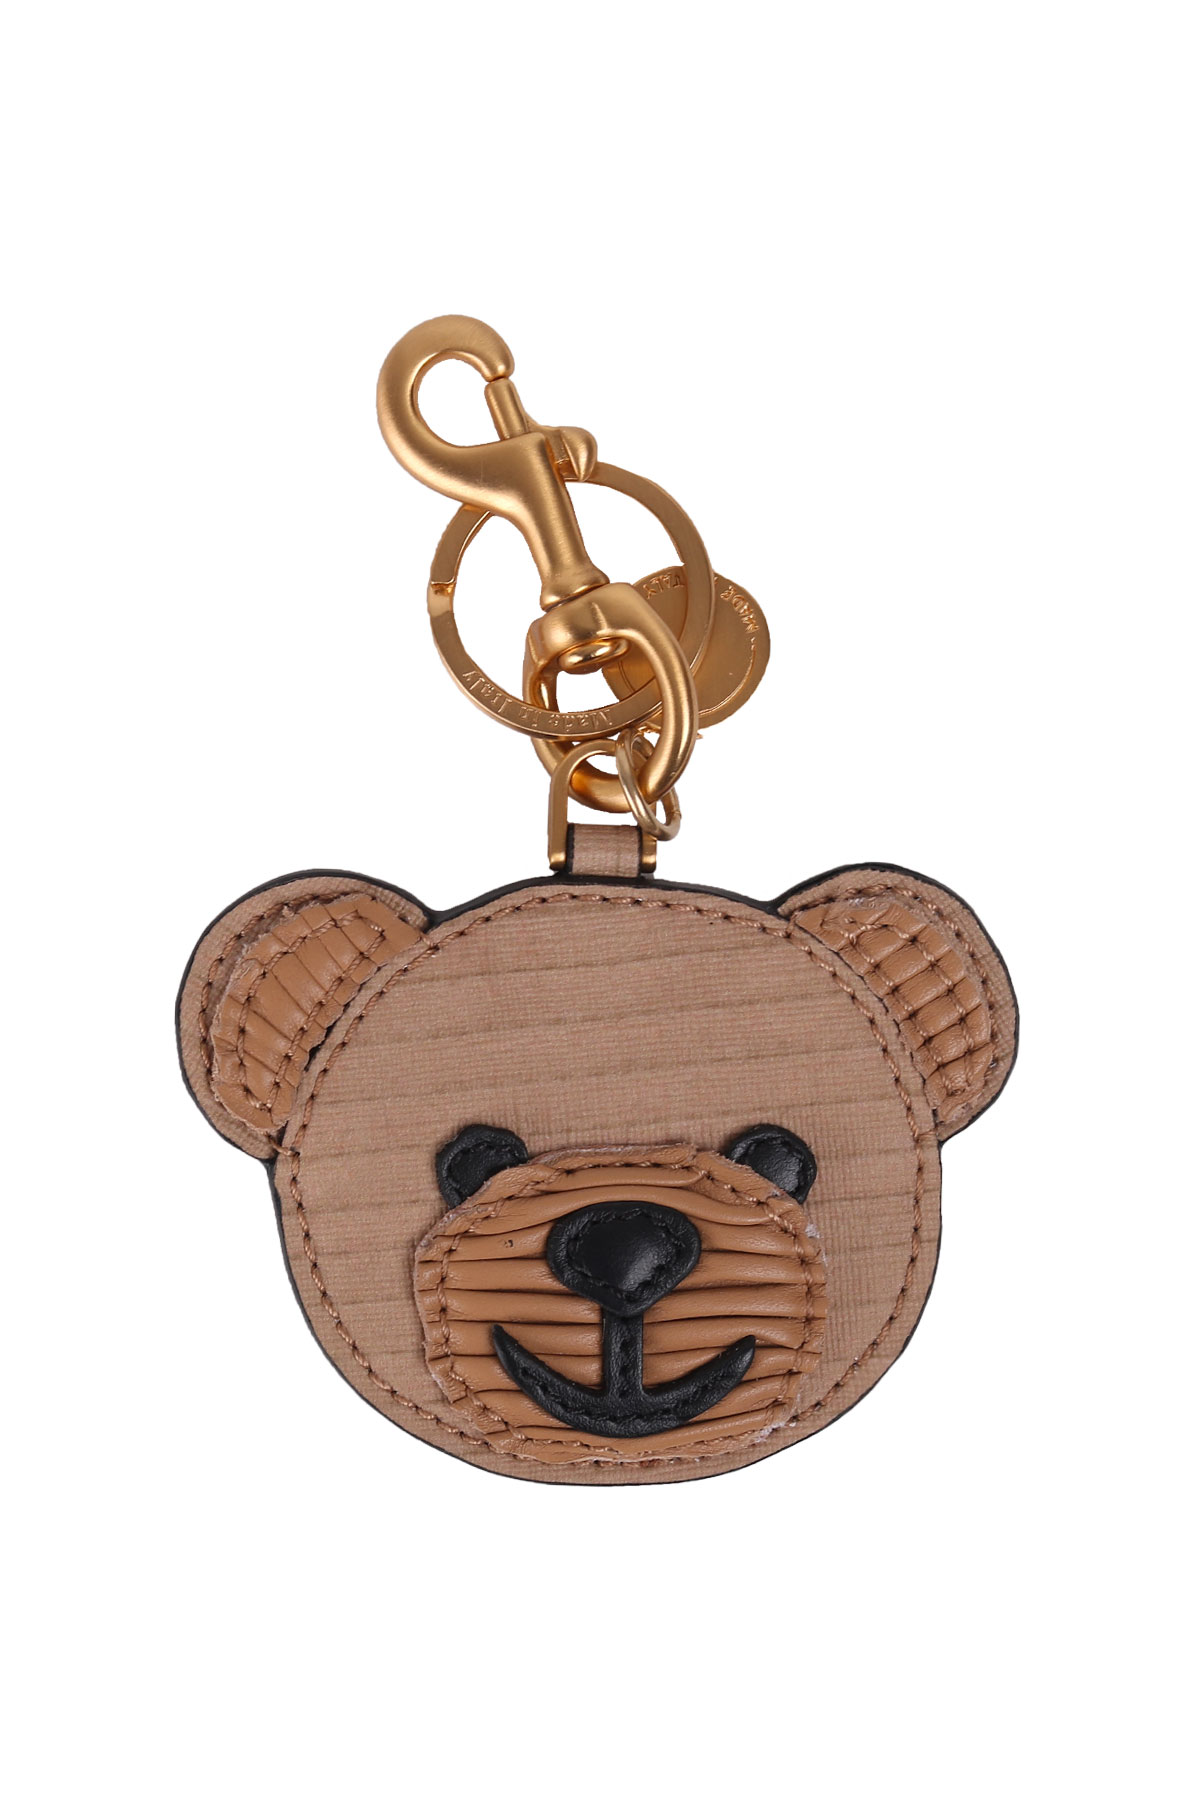 KEYRINGS BEAR CUB MOSCHINO - MOSCHINO - Carbone Boutique 8536ee22227